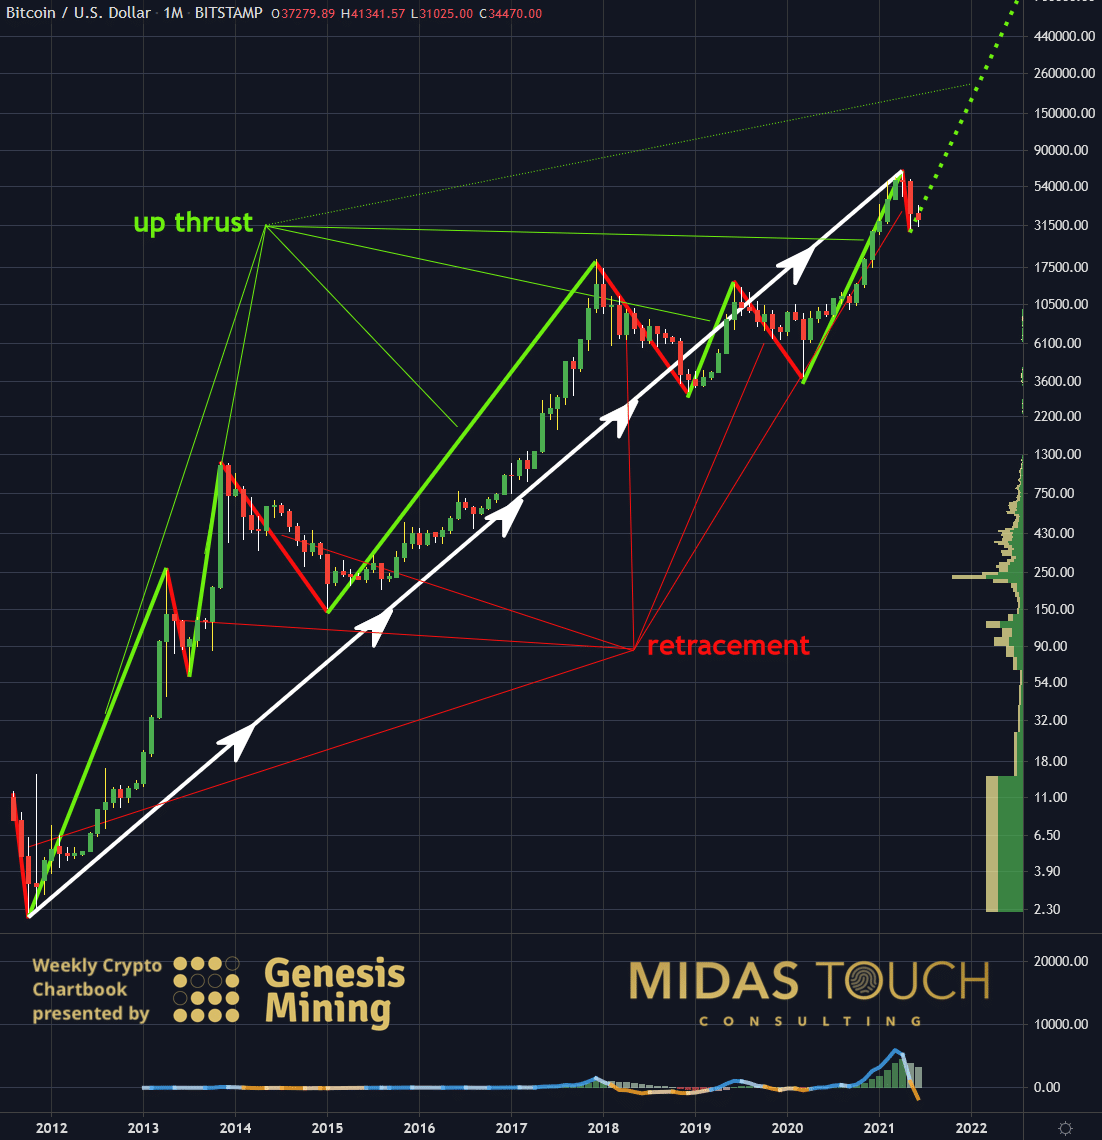 Bitcoin in US-Dollar, monthly chart as of June 21st, 2021.